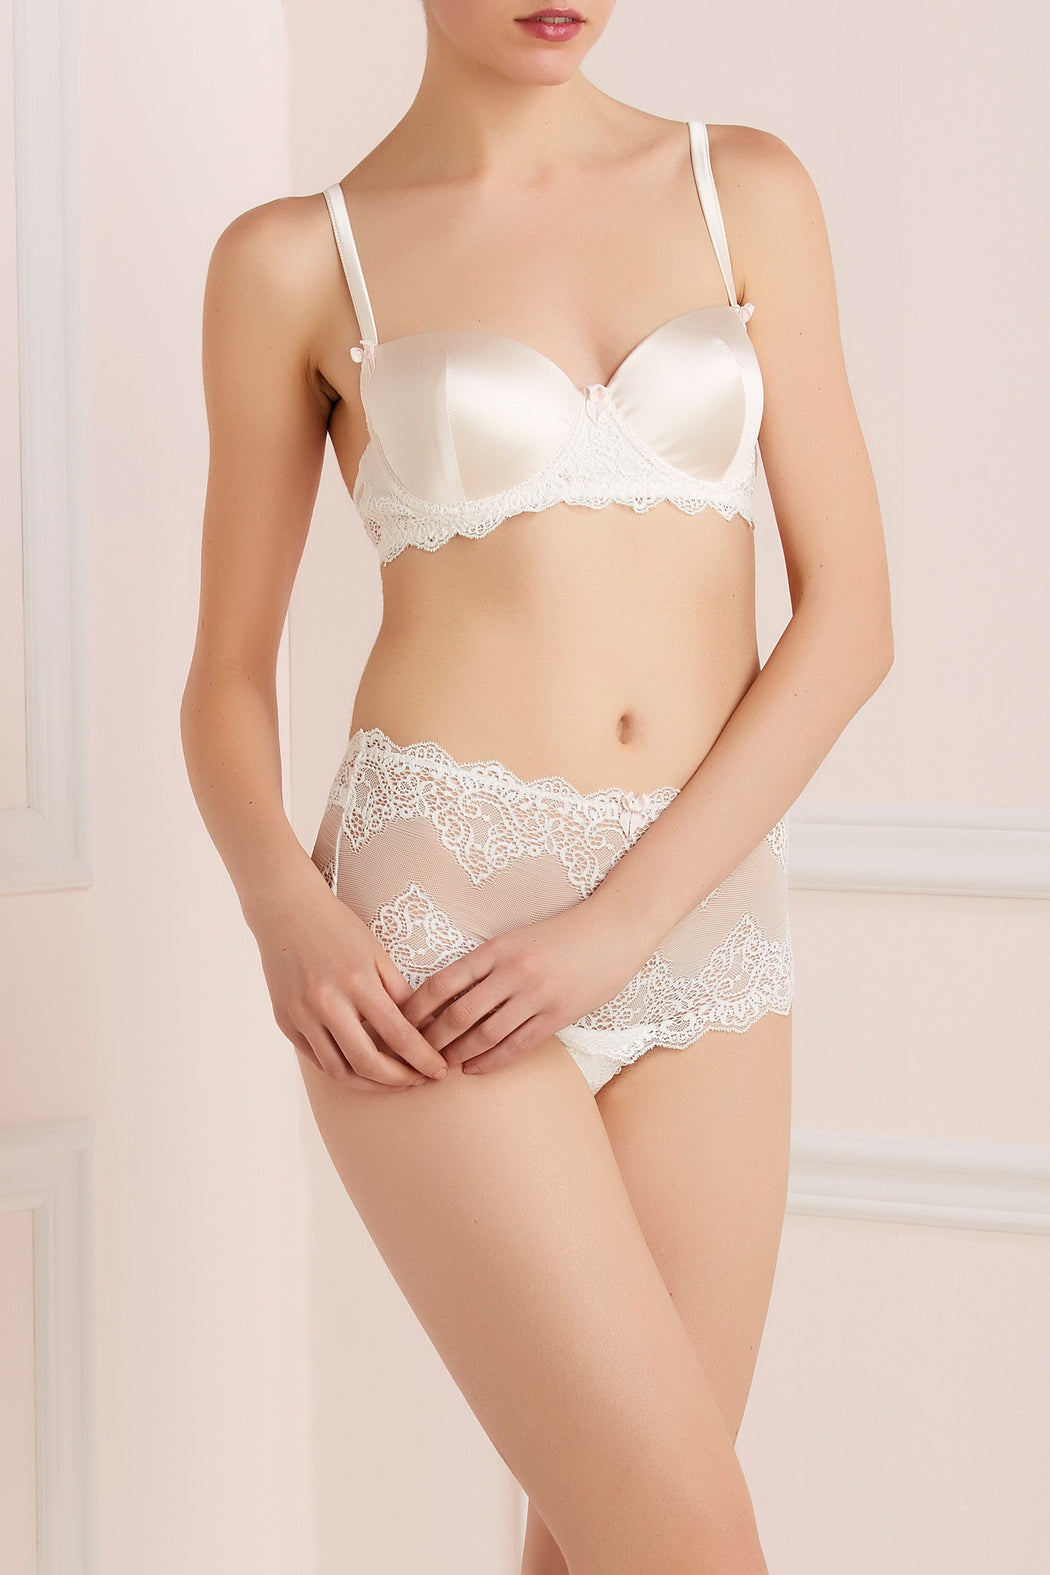 Mr Whippy lace white knicker by Mimi Holliday workingirls lingerie